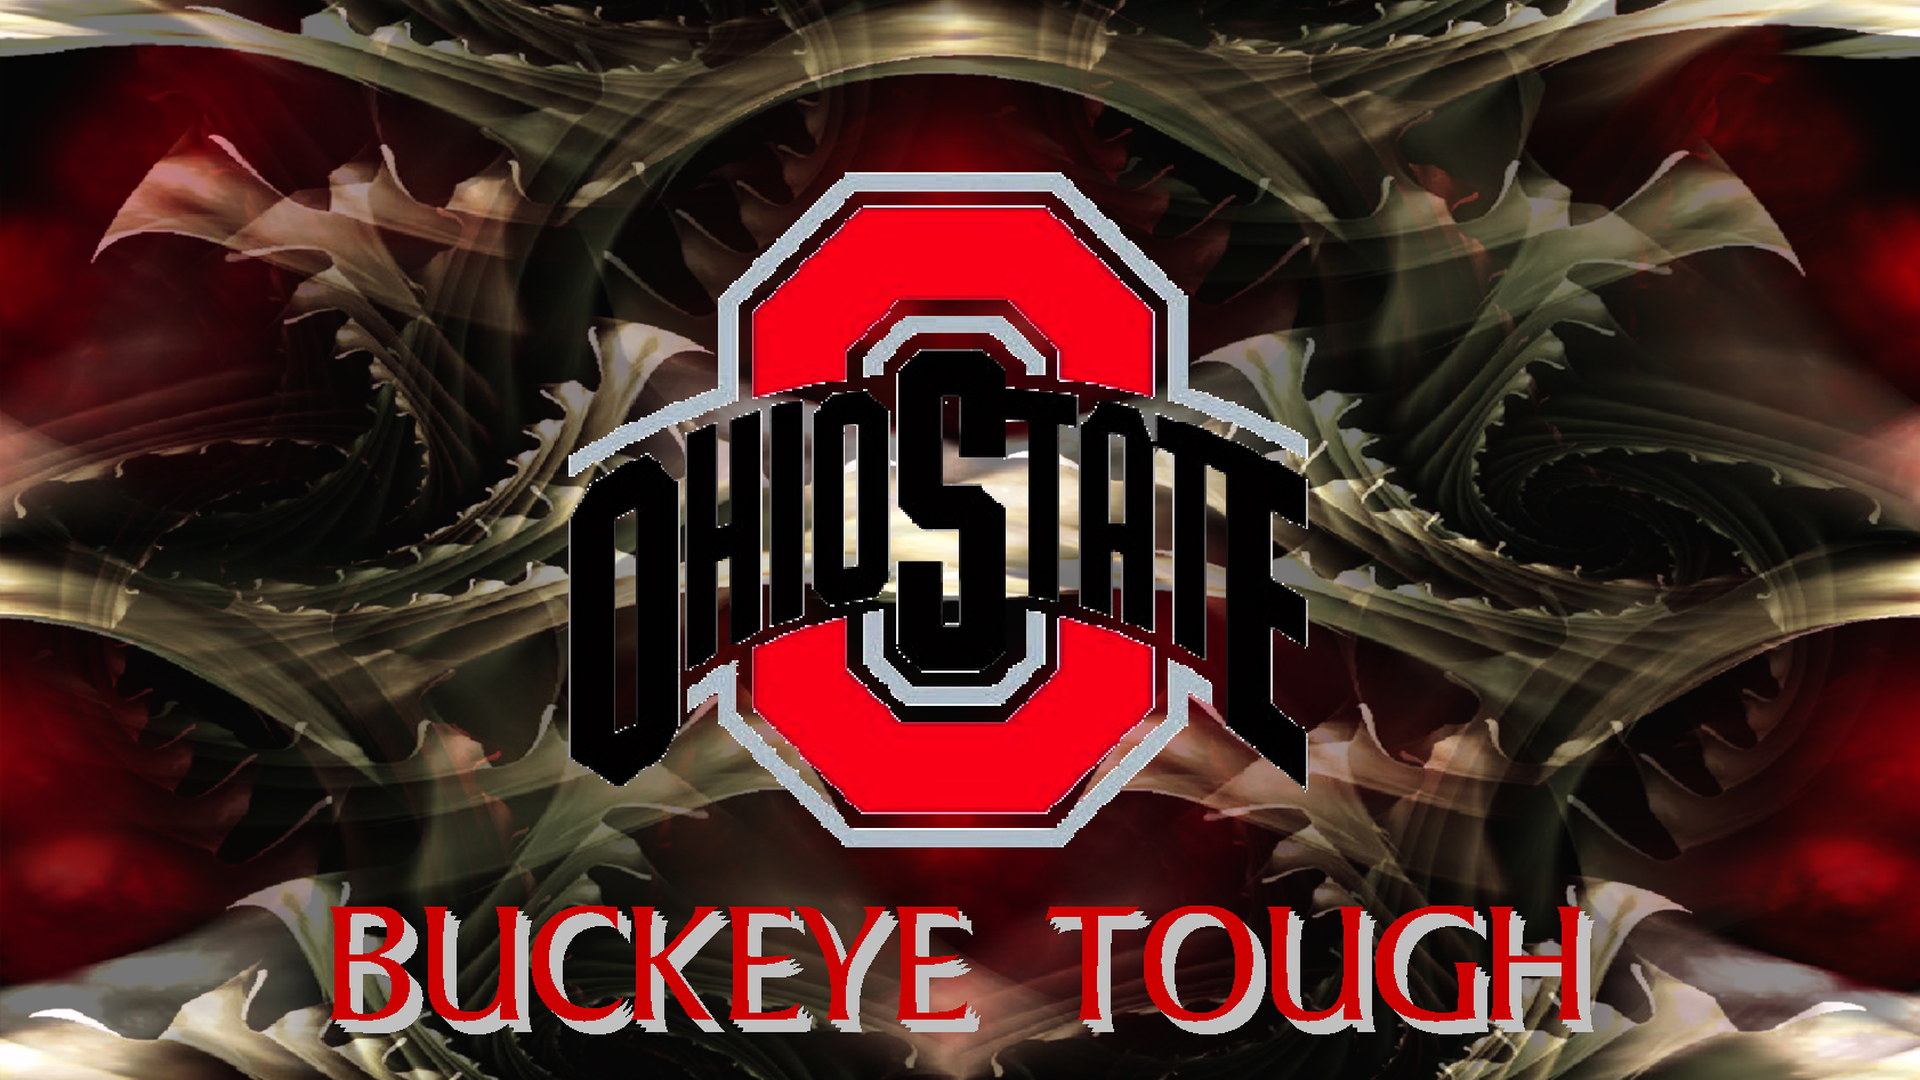 Ohio State Logo Wallpaper: Ohio State Buckeyes Images 2013 ATHLETIC LOGO #4 HD